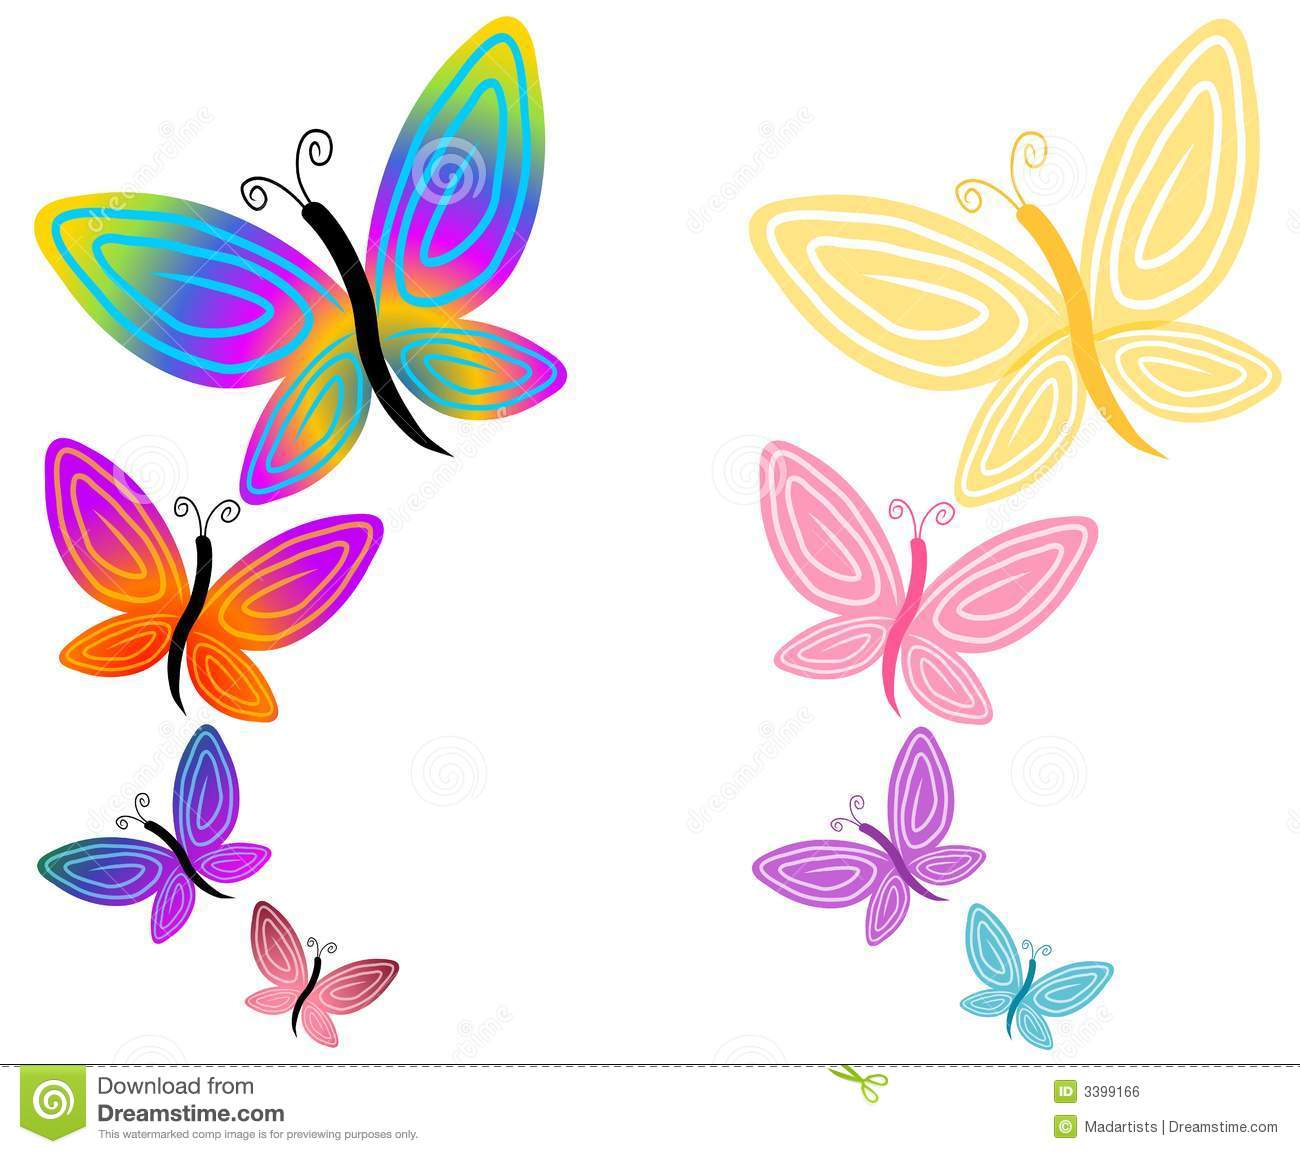 Butterfly Flowers Clip Art 01 Royalty Free Stock Image.